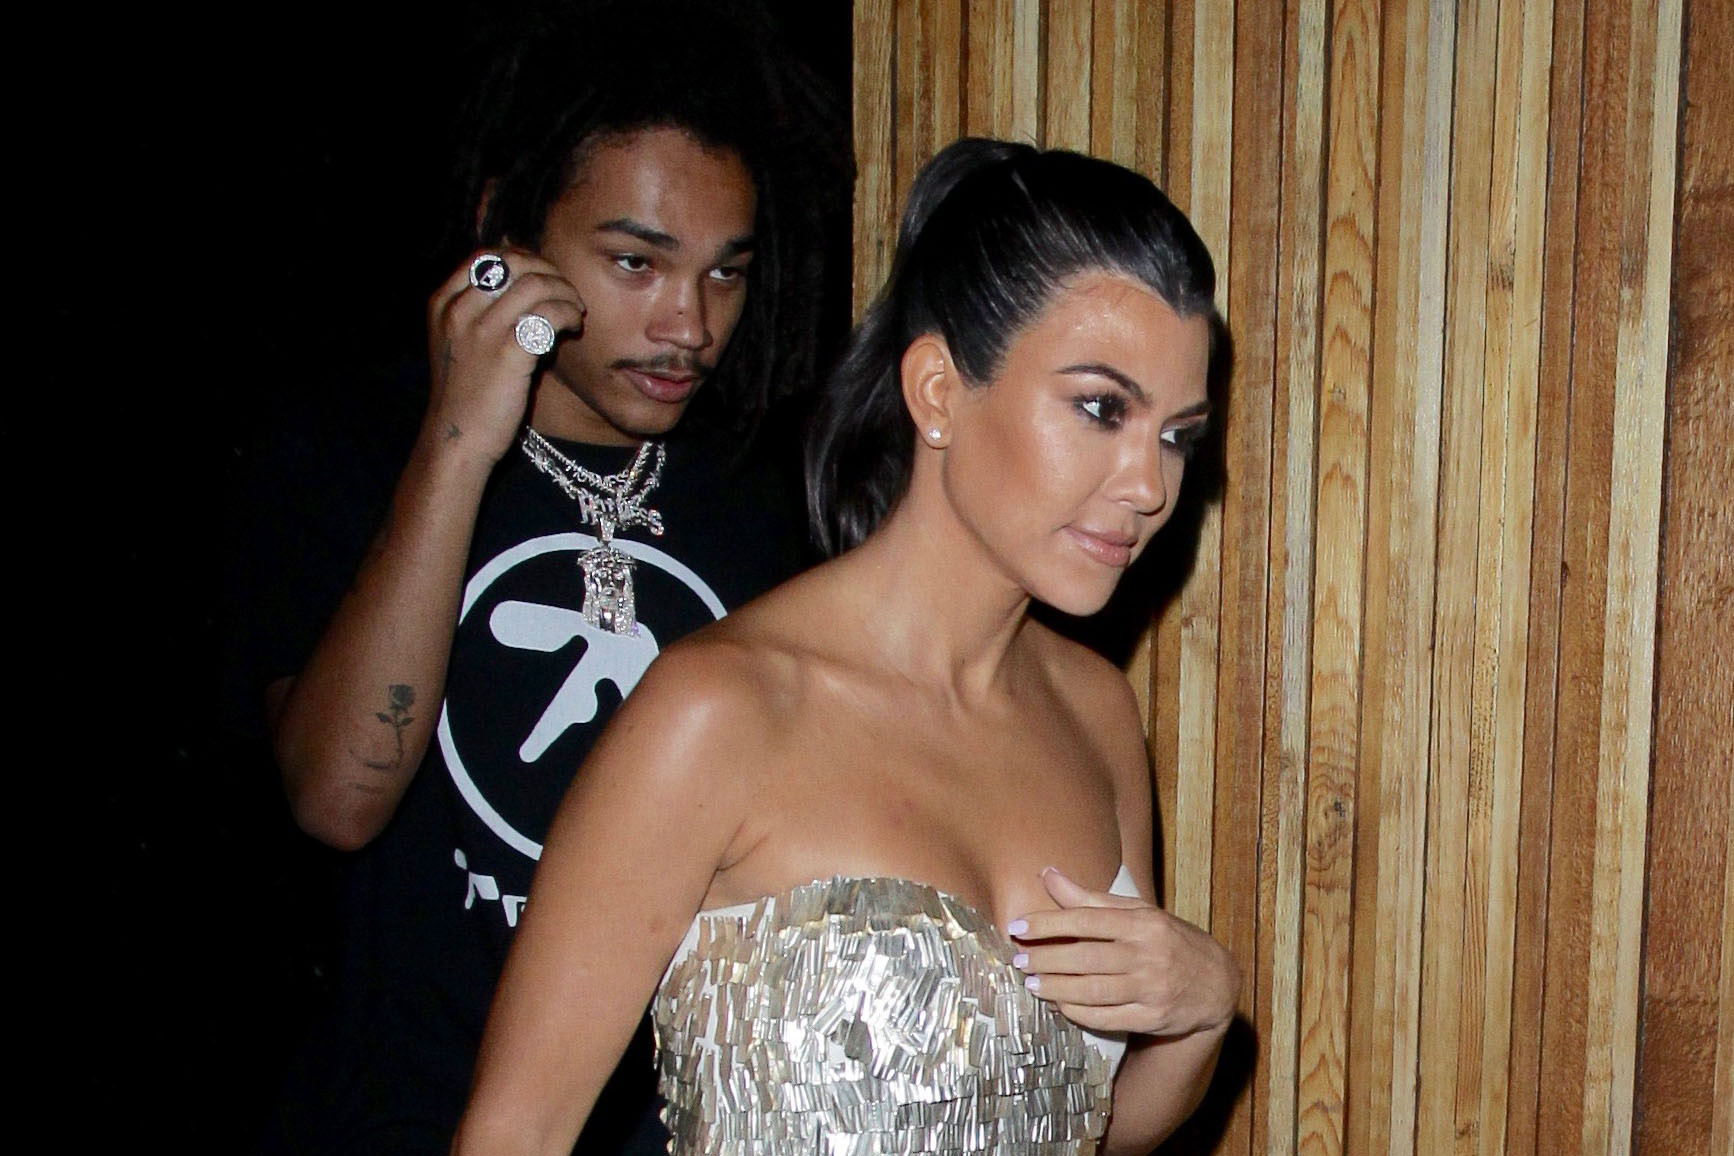 Kourtney Kardashian & Luka Sabbat Pictured Entering Hotel After Night Out